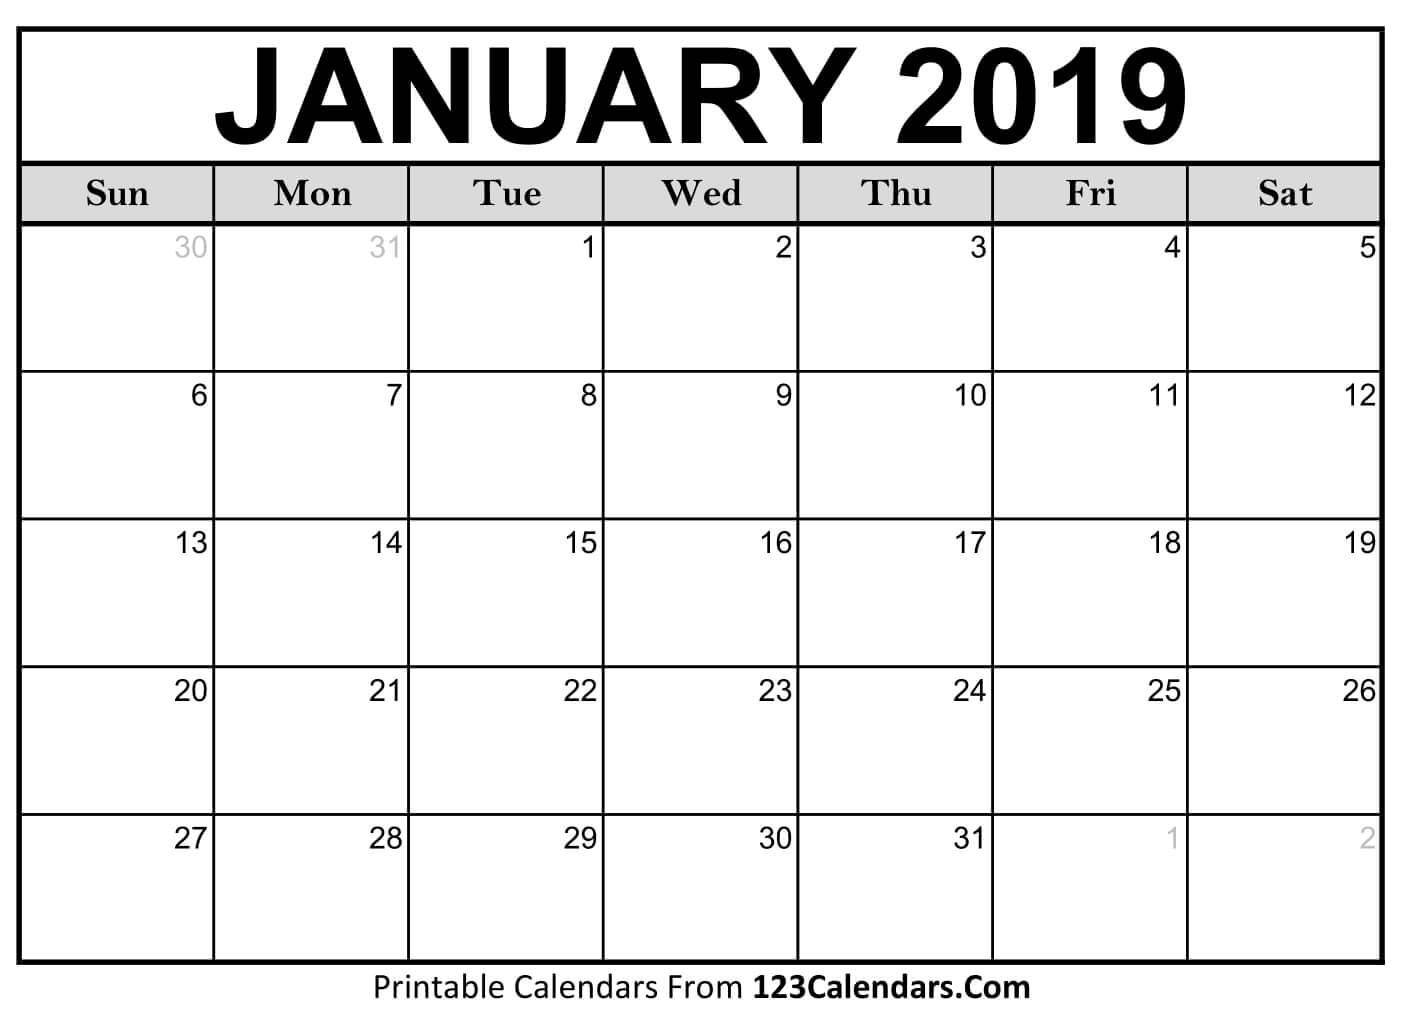 Calendar January 2019 January 2019 Activity Calendar – Babcock Community Care Centre